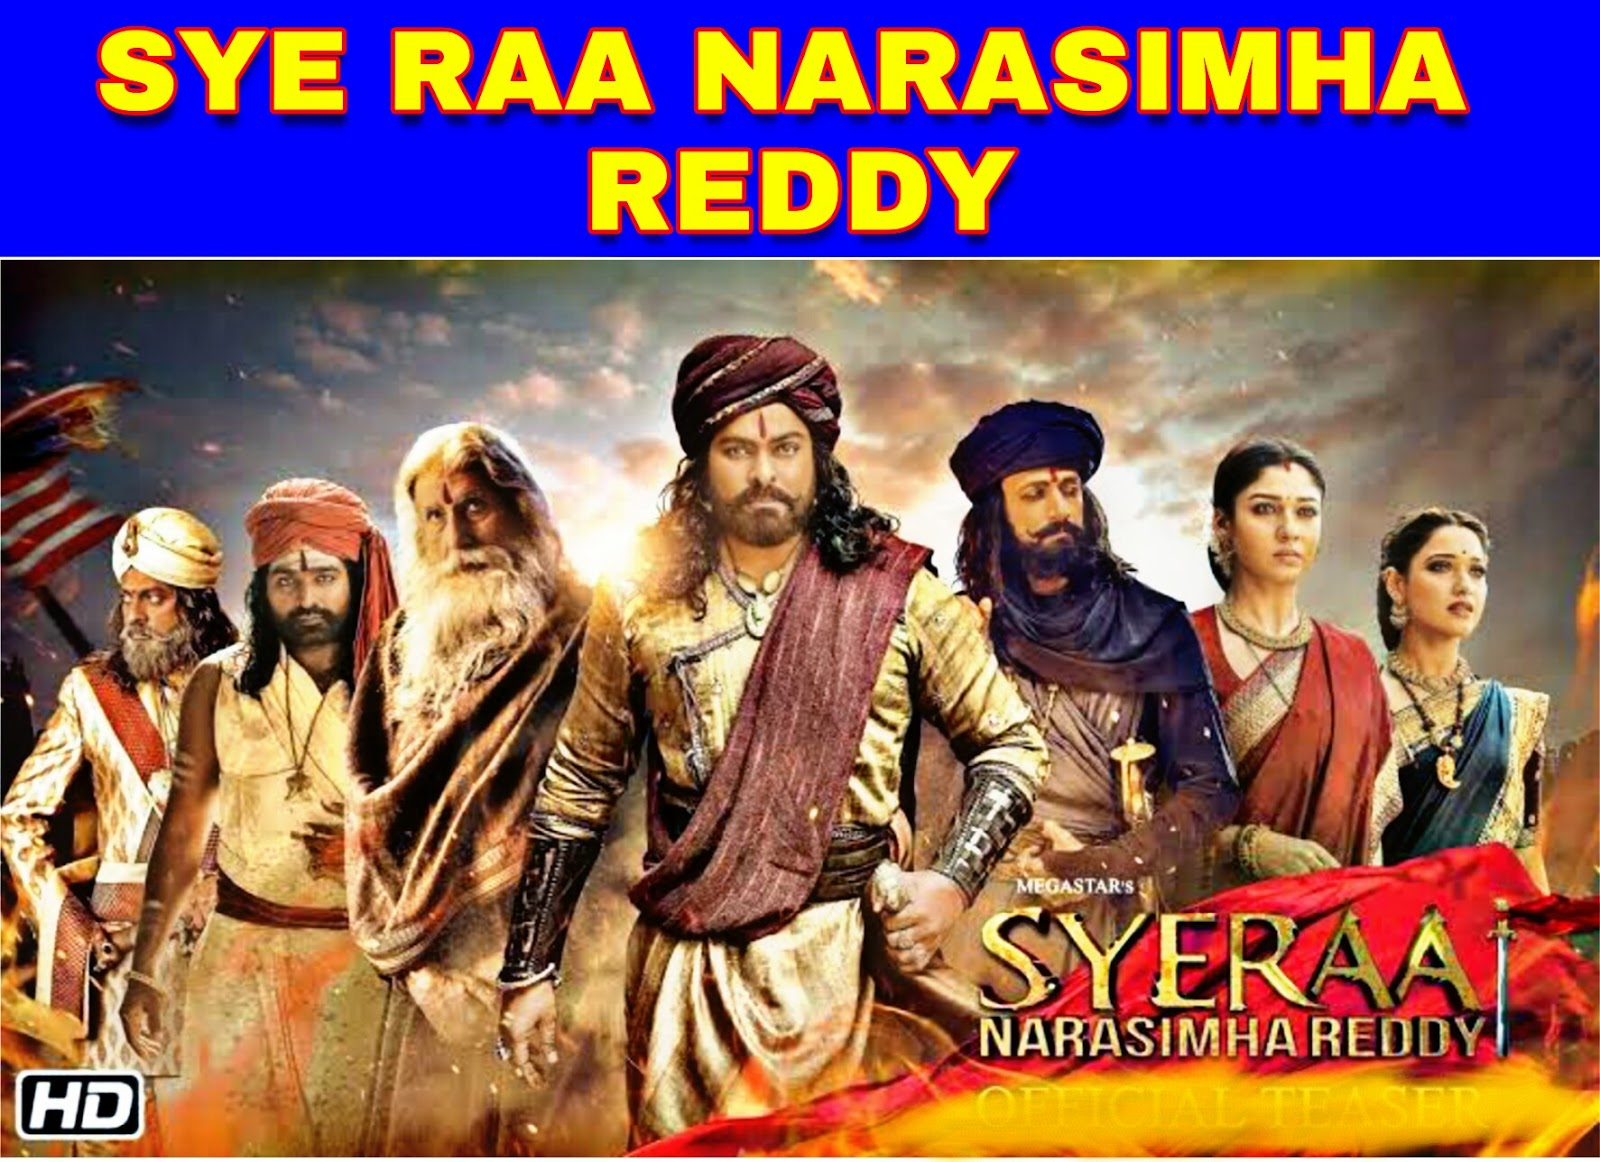 Sye Raa Narasimha Reddy (Full Movie) Download Filmywap Hindi Dubbed Filmyzilla, mp4moviez, Jalshamoviez